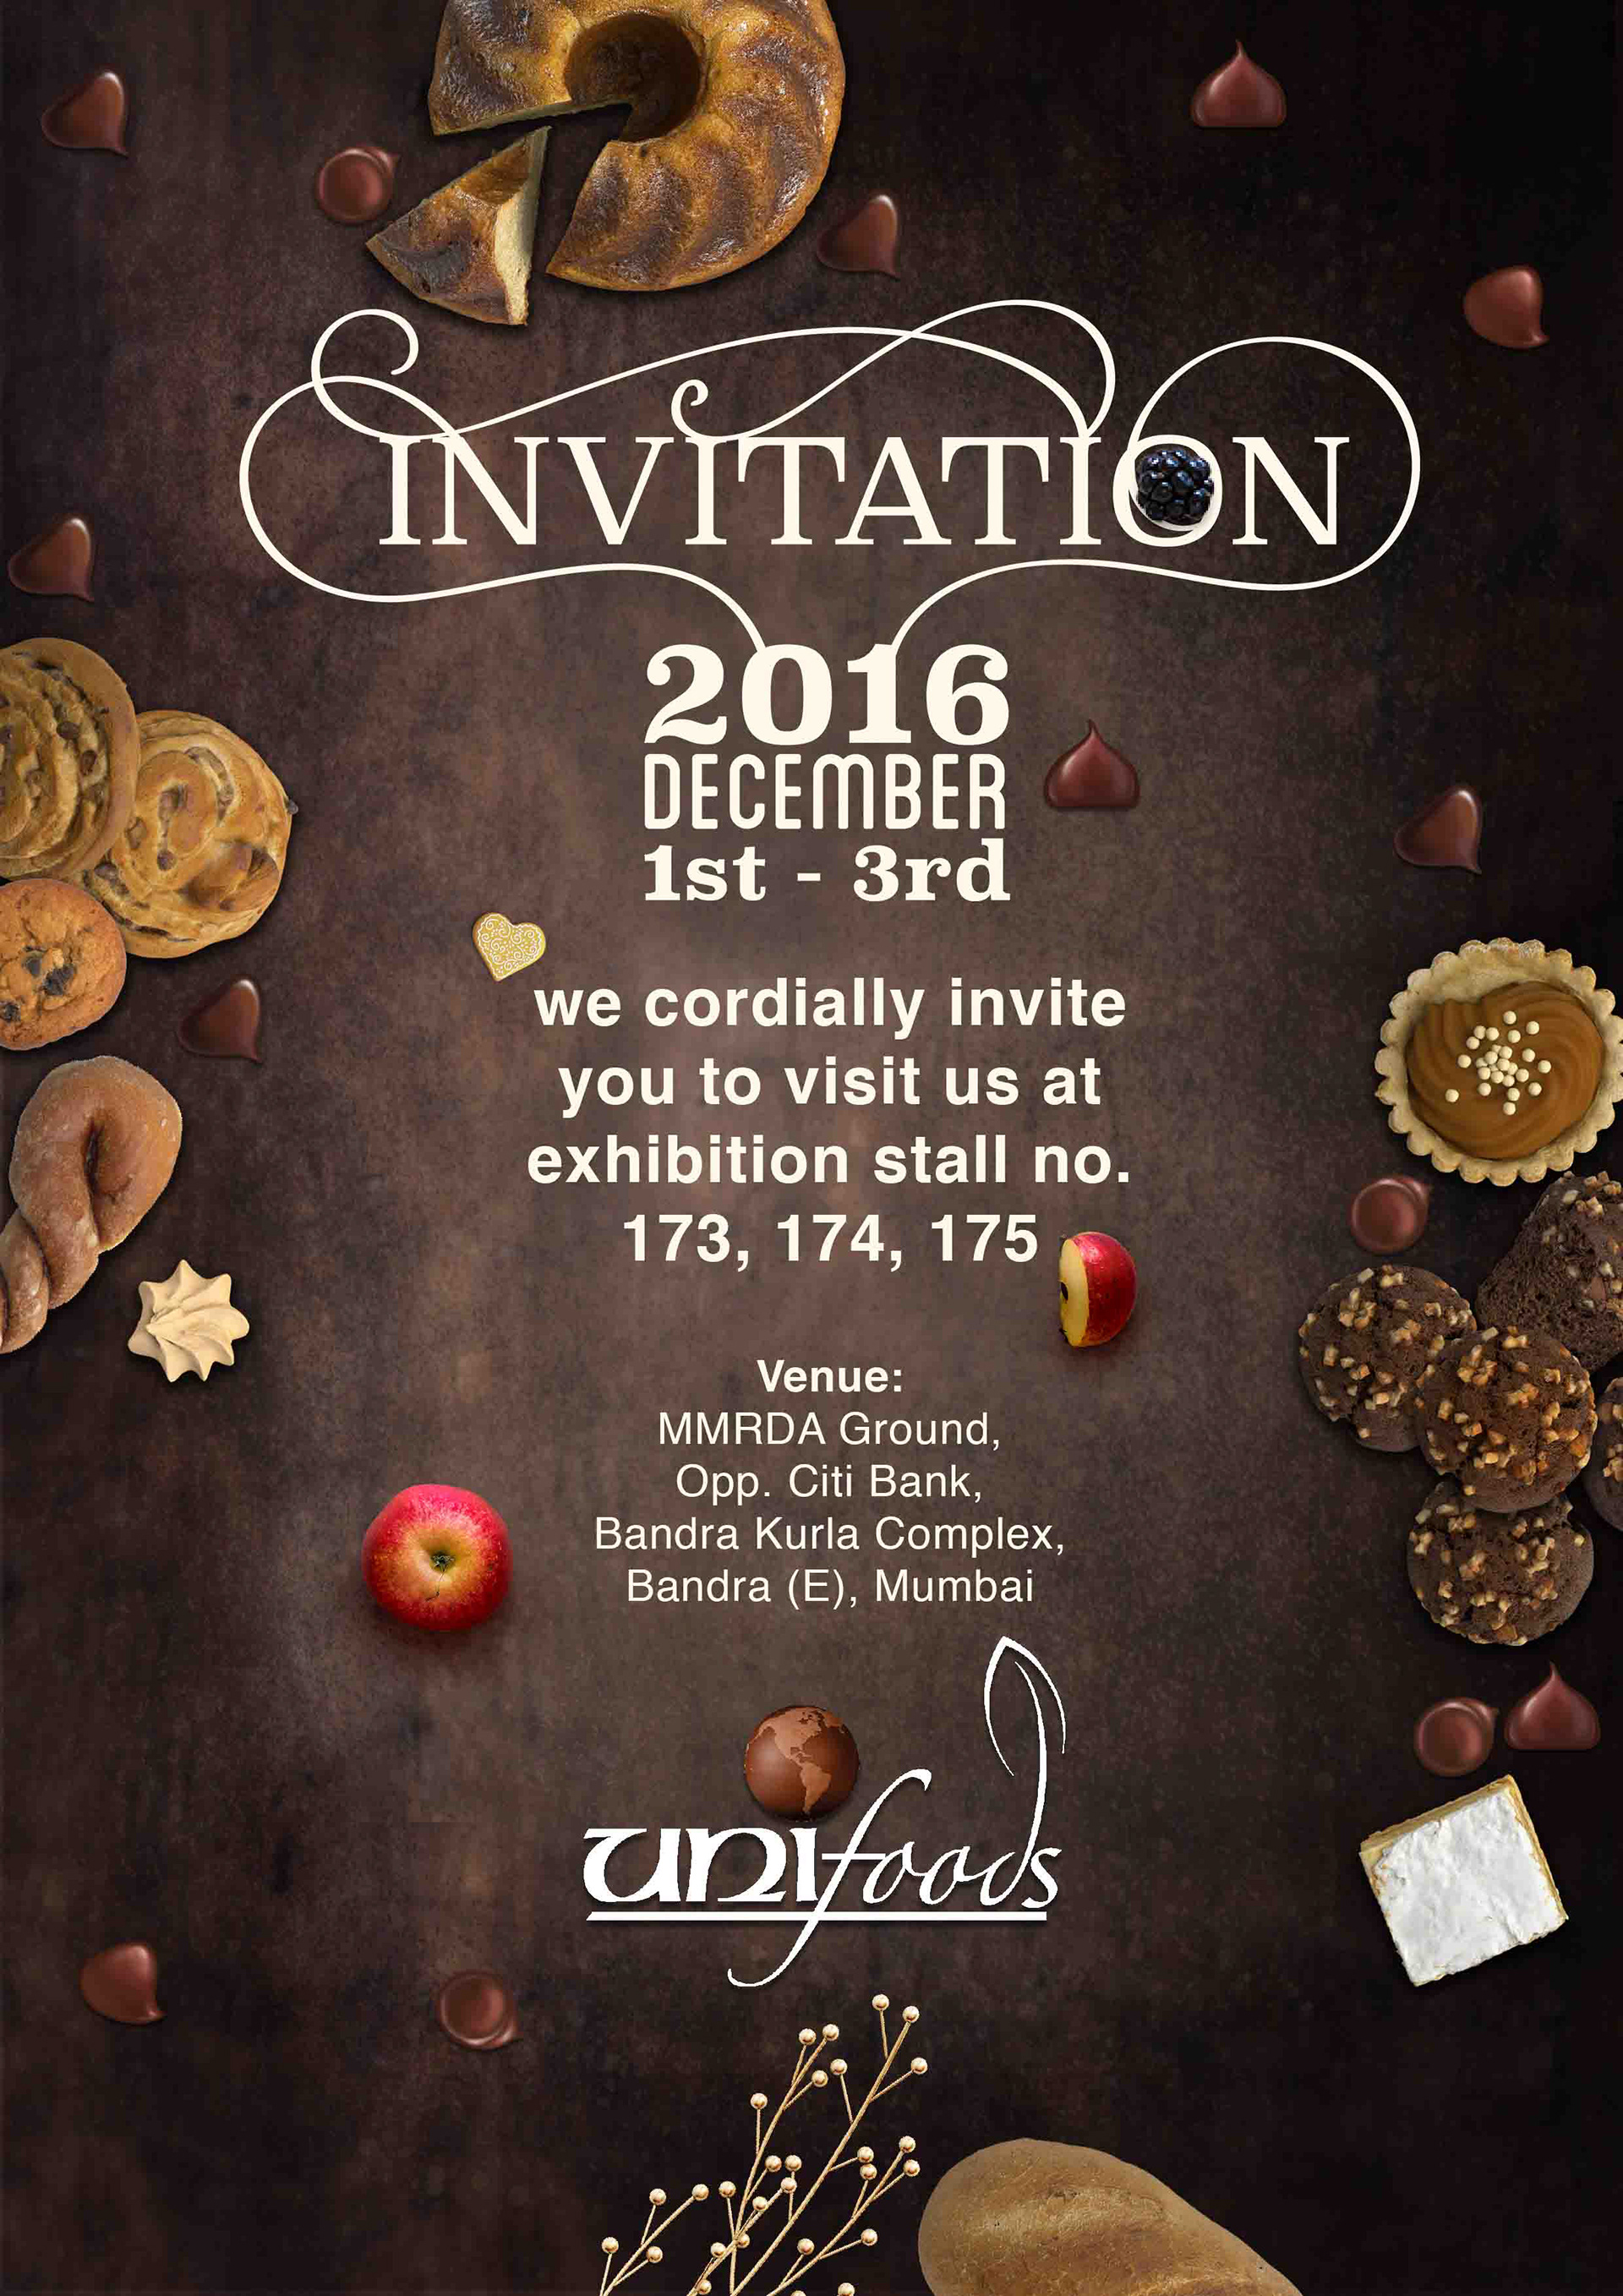 Invitation For Exhibition Stall : Shweta sawant invitation design for exhibition